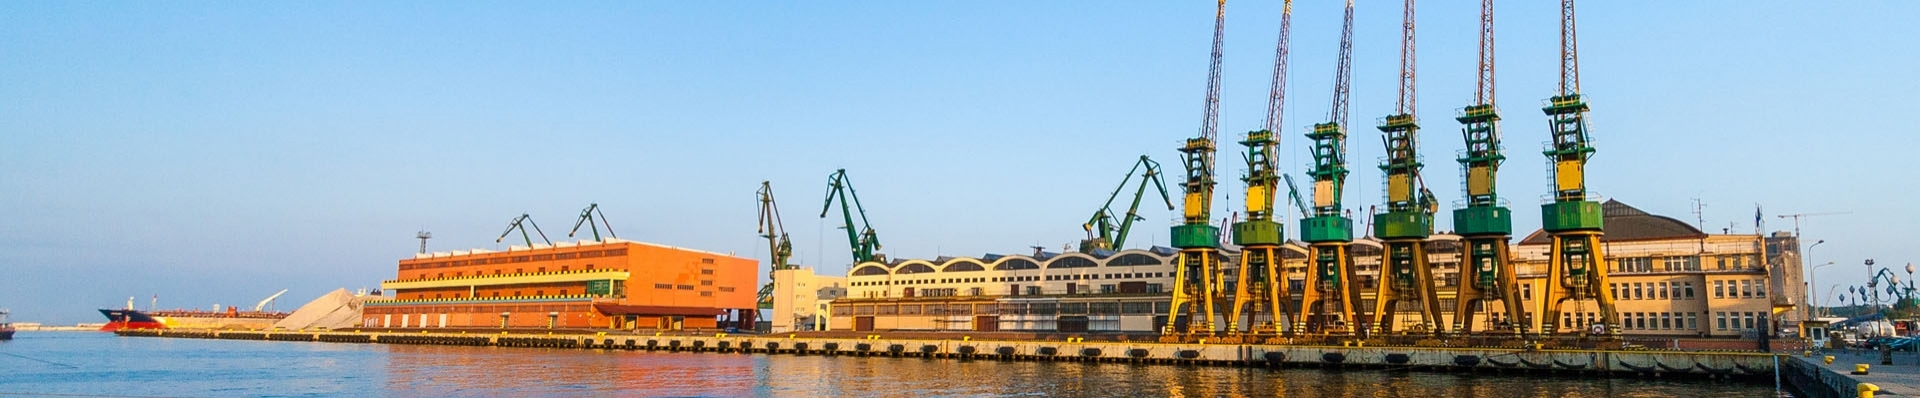 Sightseeing the Port of Gdynia